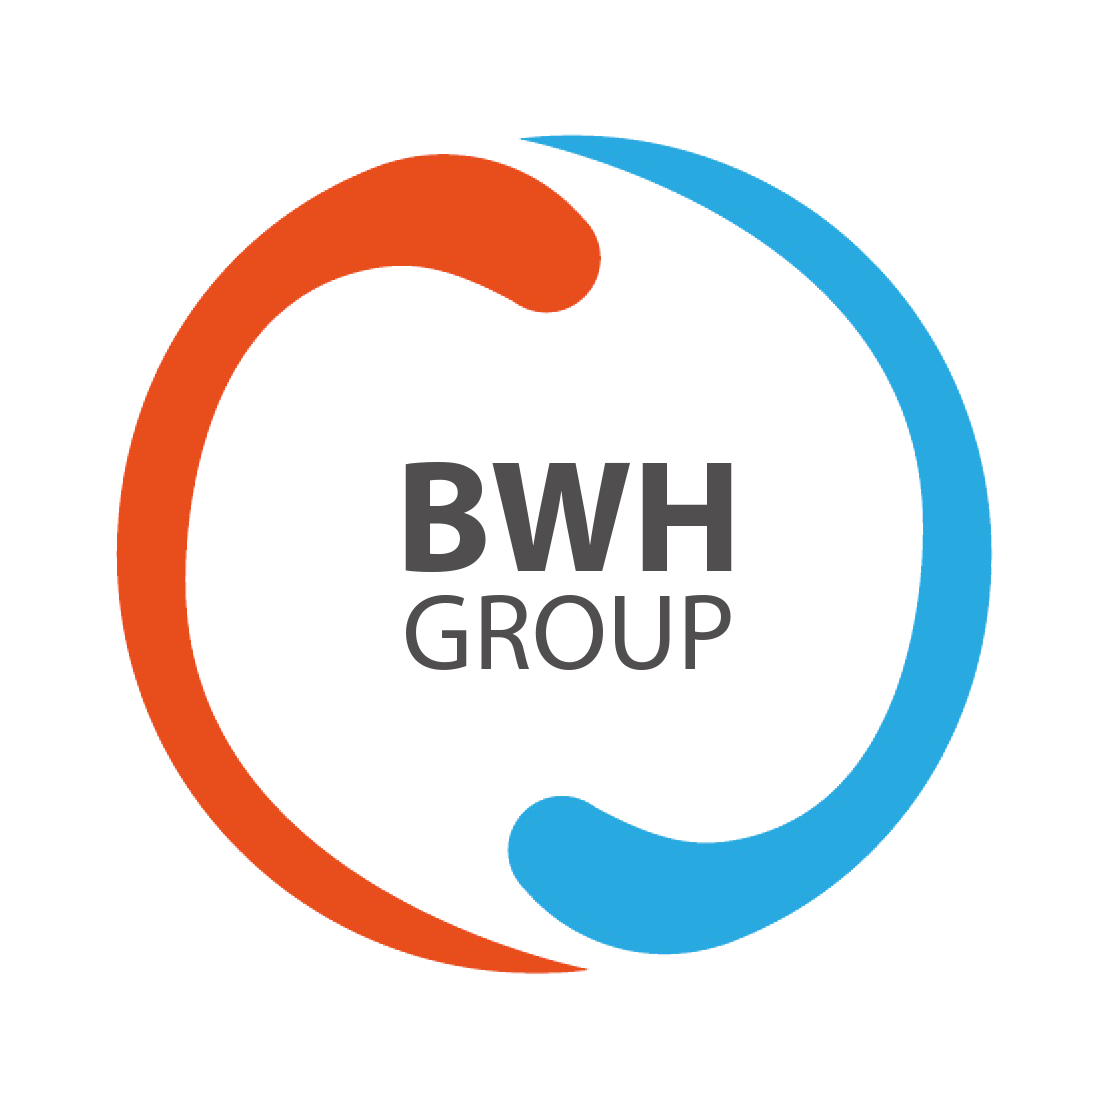 BWH GROUP